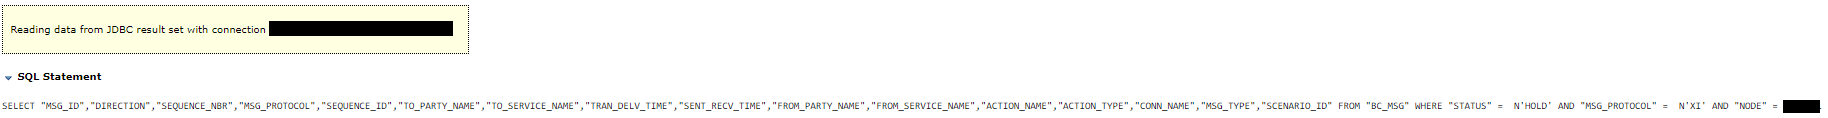 SQL statement.PNG